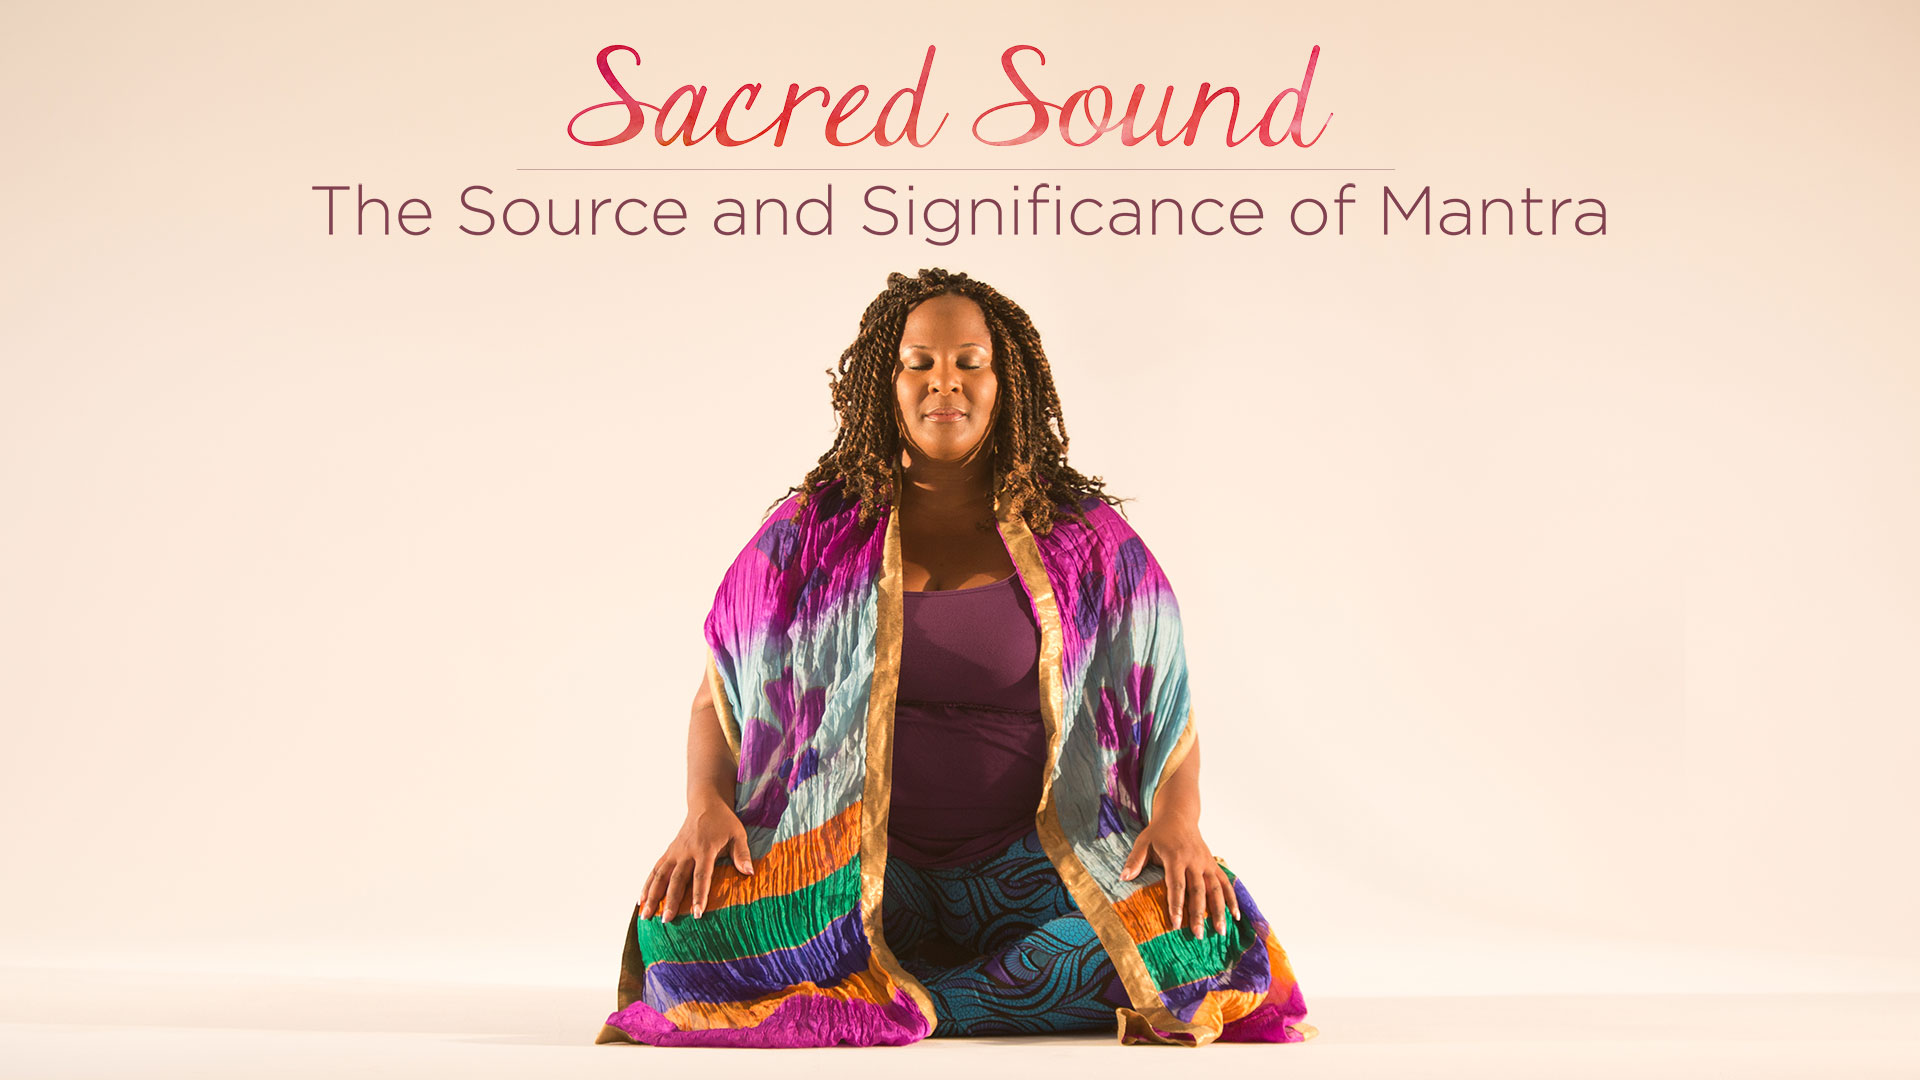 Sacred Sound: The Source and Significance of Mantra